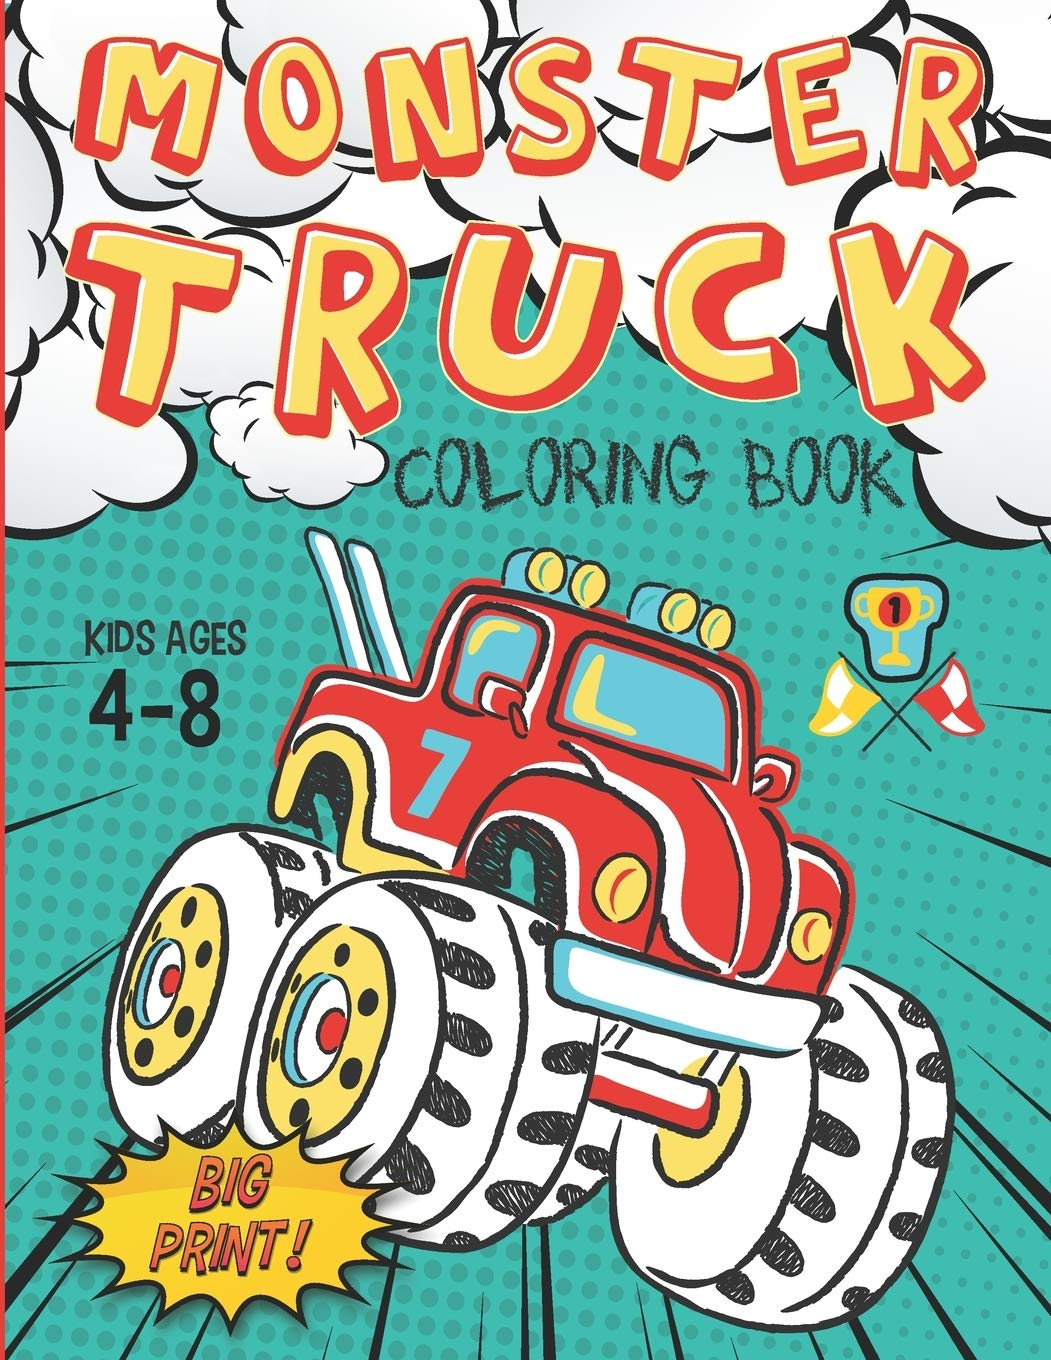 Monster Truck Coloring Book Kids Ages 4 8 Big Print 60 Unique Drawing Of Monster Truck Cars Trucks Muscle Cars Suvs Supercars And More Popular Cars Coloring For Boys Truck King 9781660086528 Amazon Com Books